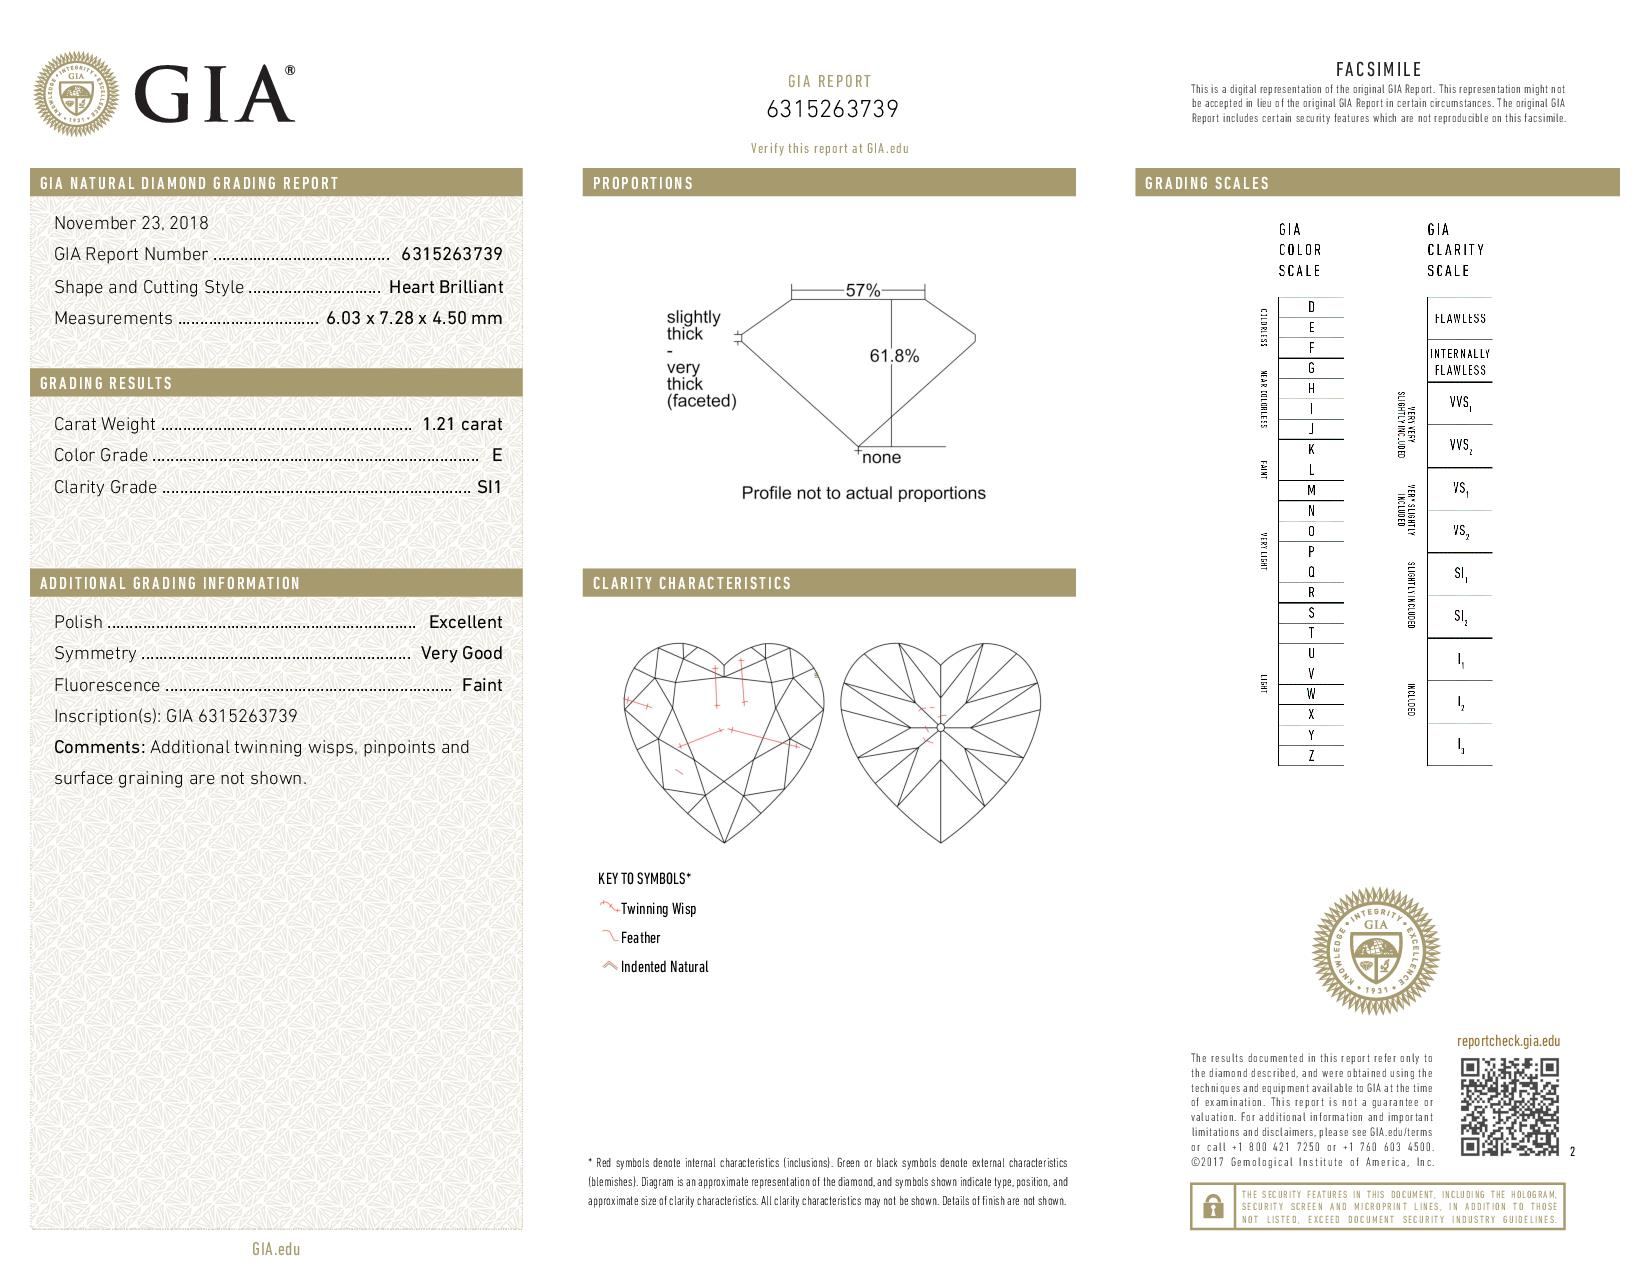 This is a 1.21 carat heart shape, E color, SI1 clarity natural diamond accompanied by a GIA grading report.